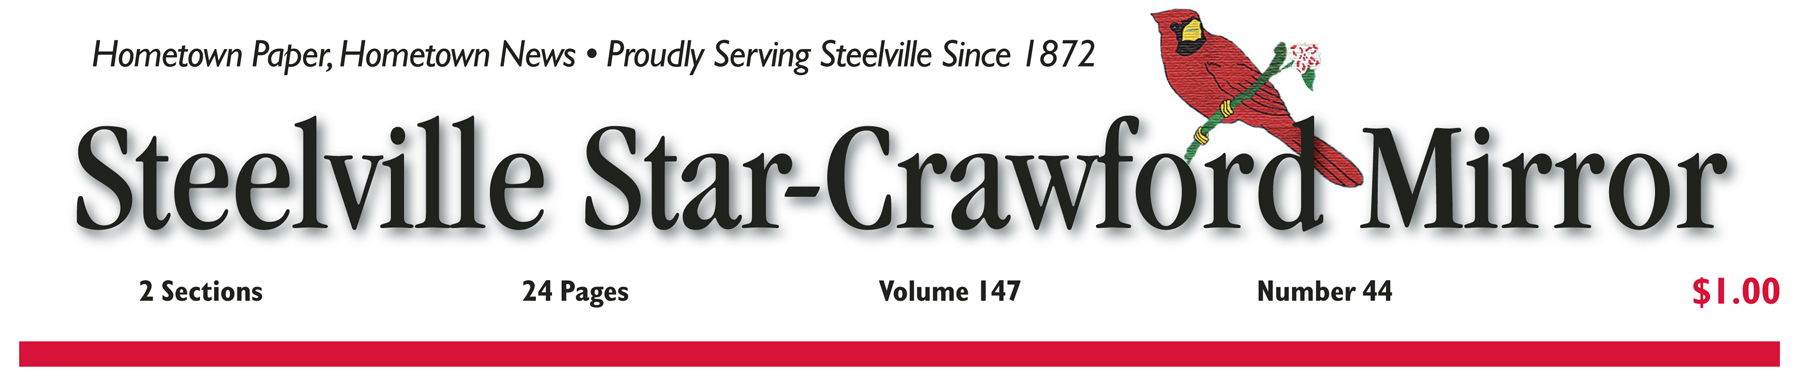 1 Year Steelville Star-Crawford Mirror in Crawford and Adjoining Counties with website access